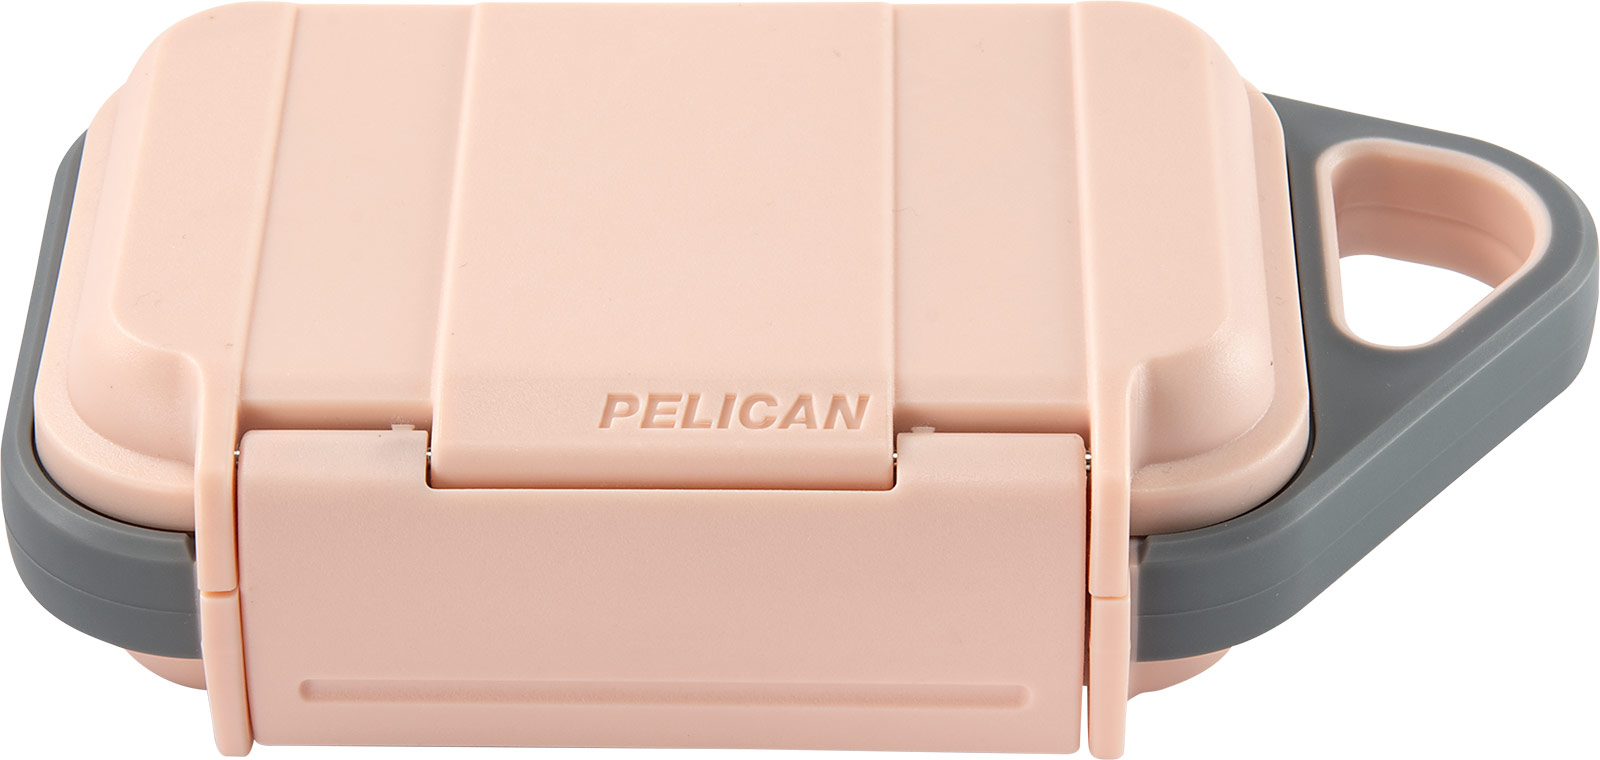 pelican small pink utility go case